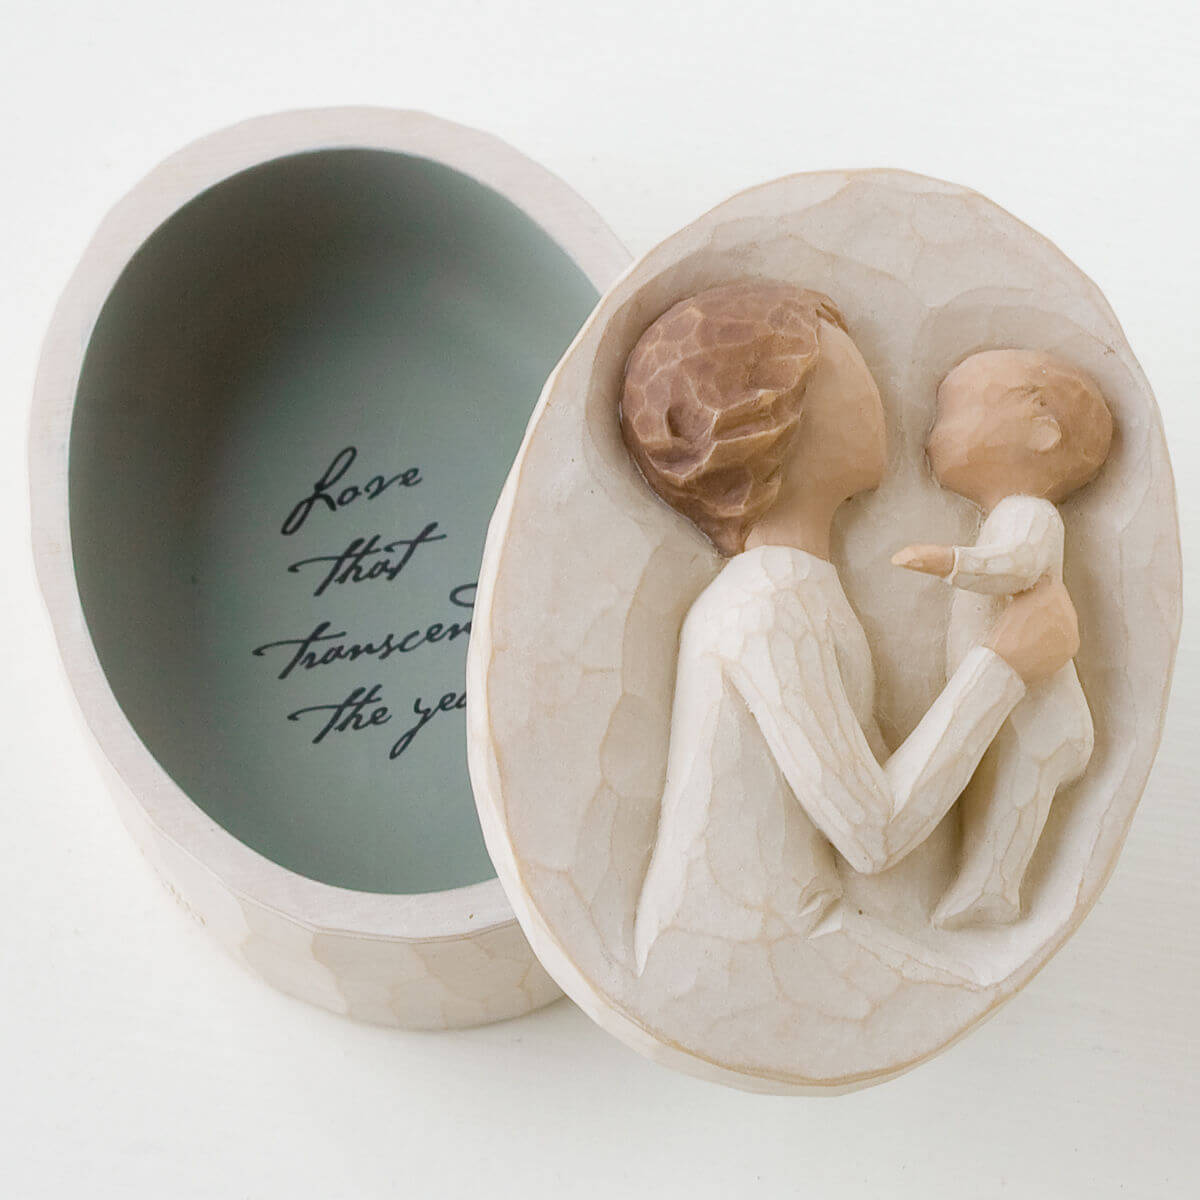 Such a beautiful and sentimental gift for any daughter to give their mother or grandmother